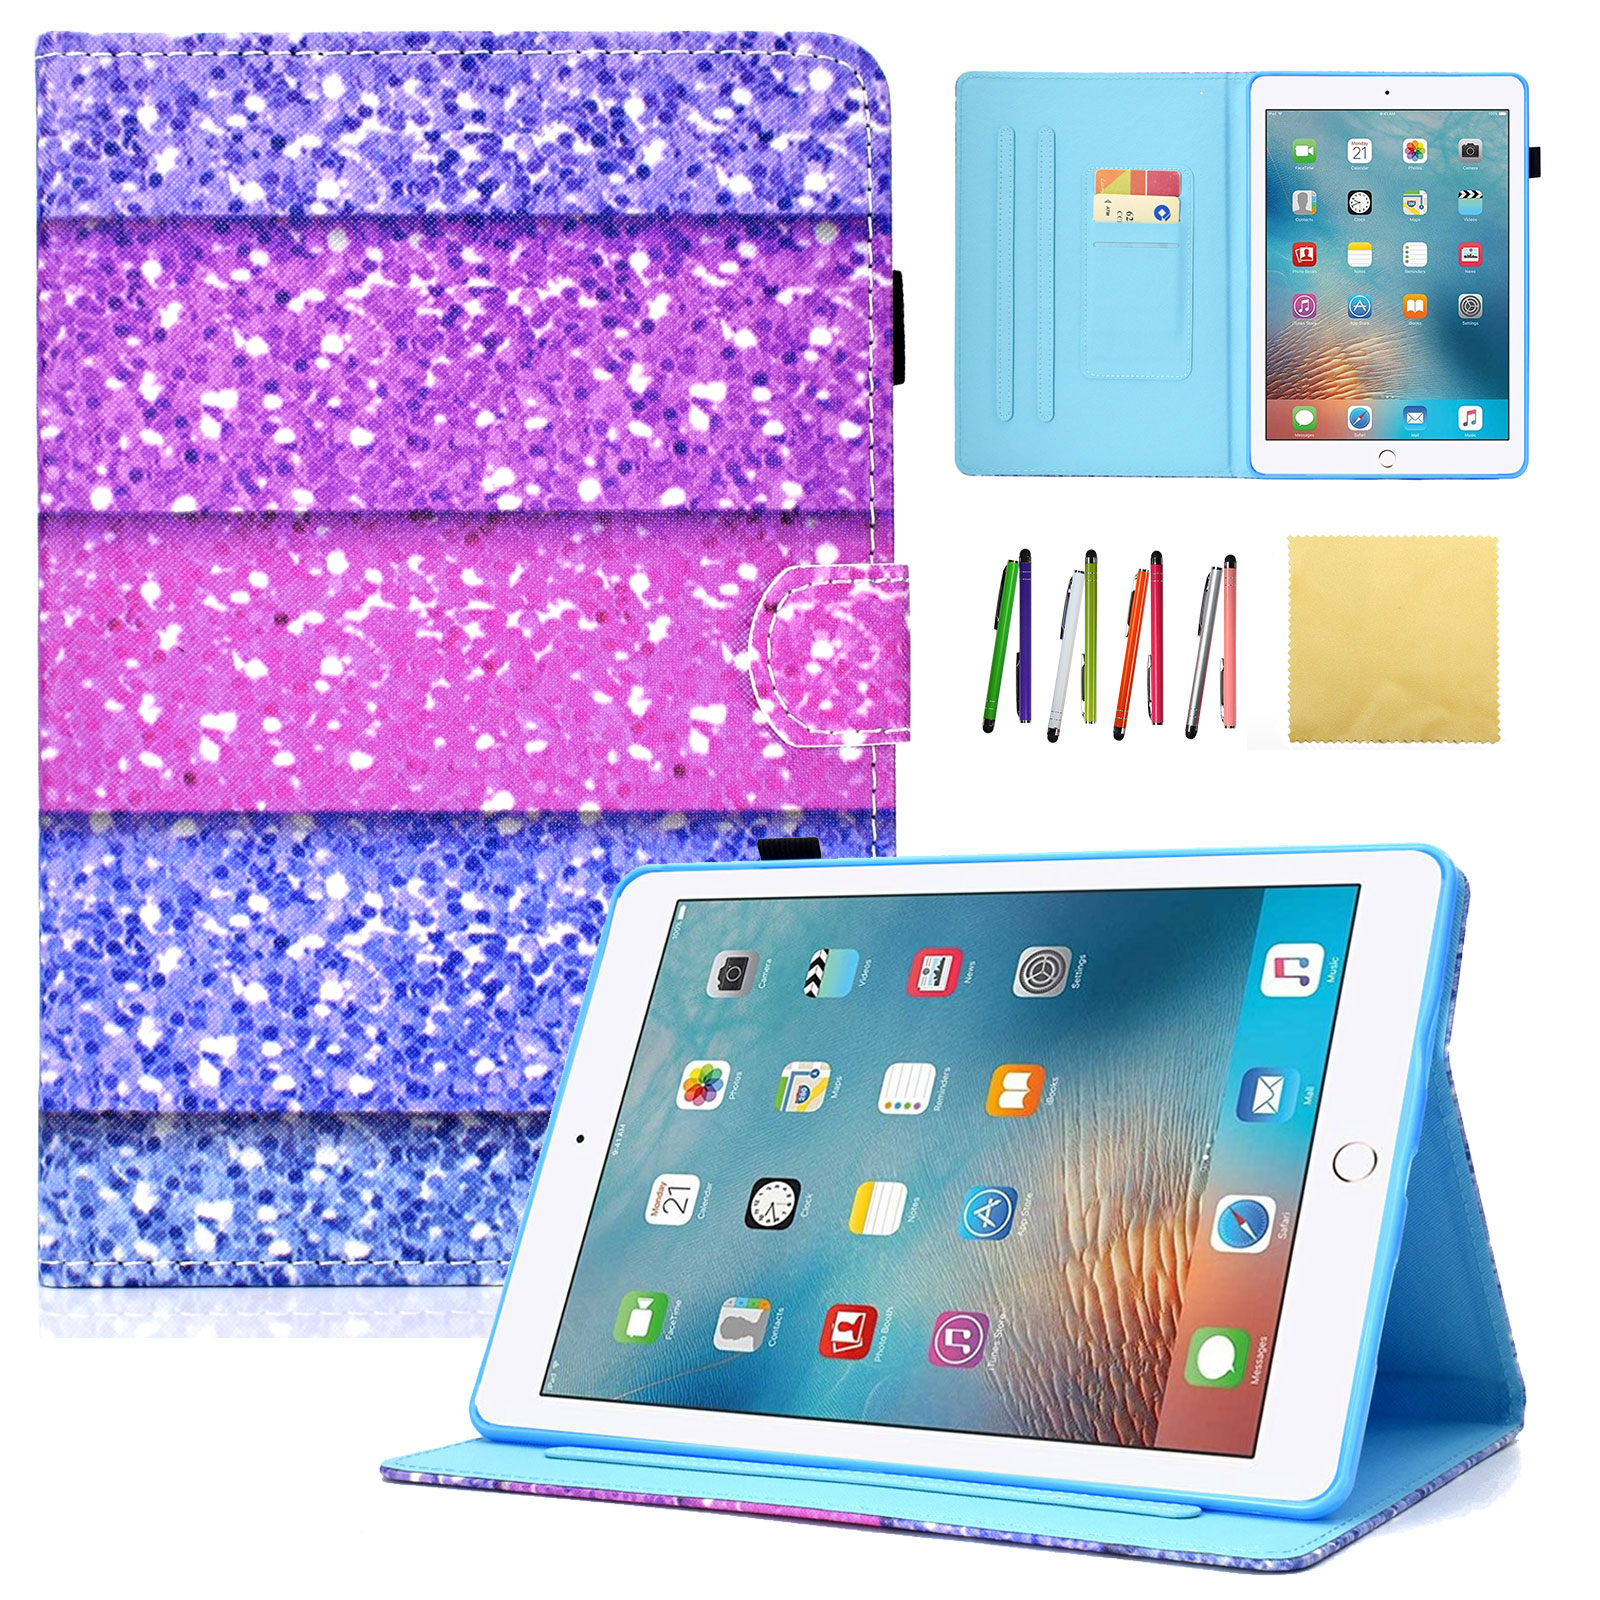 iPad Pro 10.5 2017 Case, Goodest Colorful PU Leather Stand Wallet Case and Covers with Auto Sleep/Wake Function & Pencil Holder For Apple iPad Pro 10.5 2017 Model, Colorful Sand